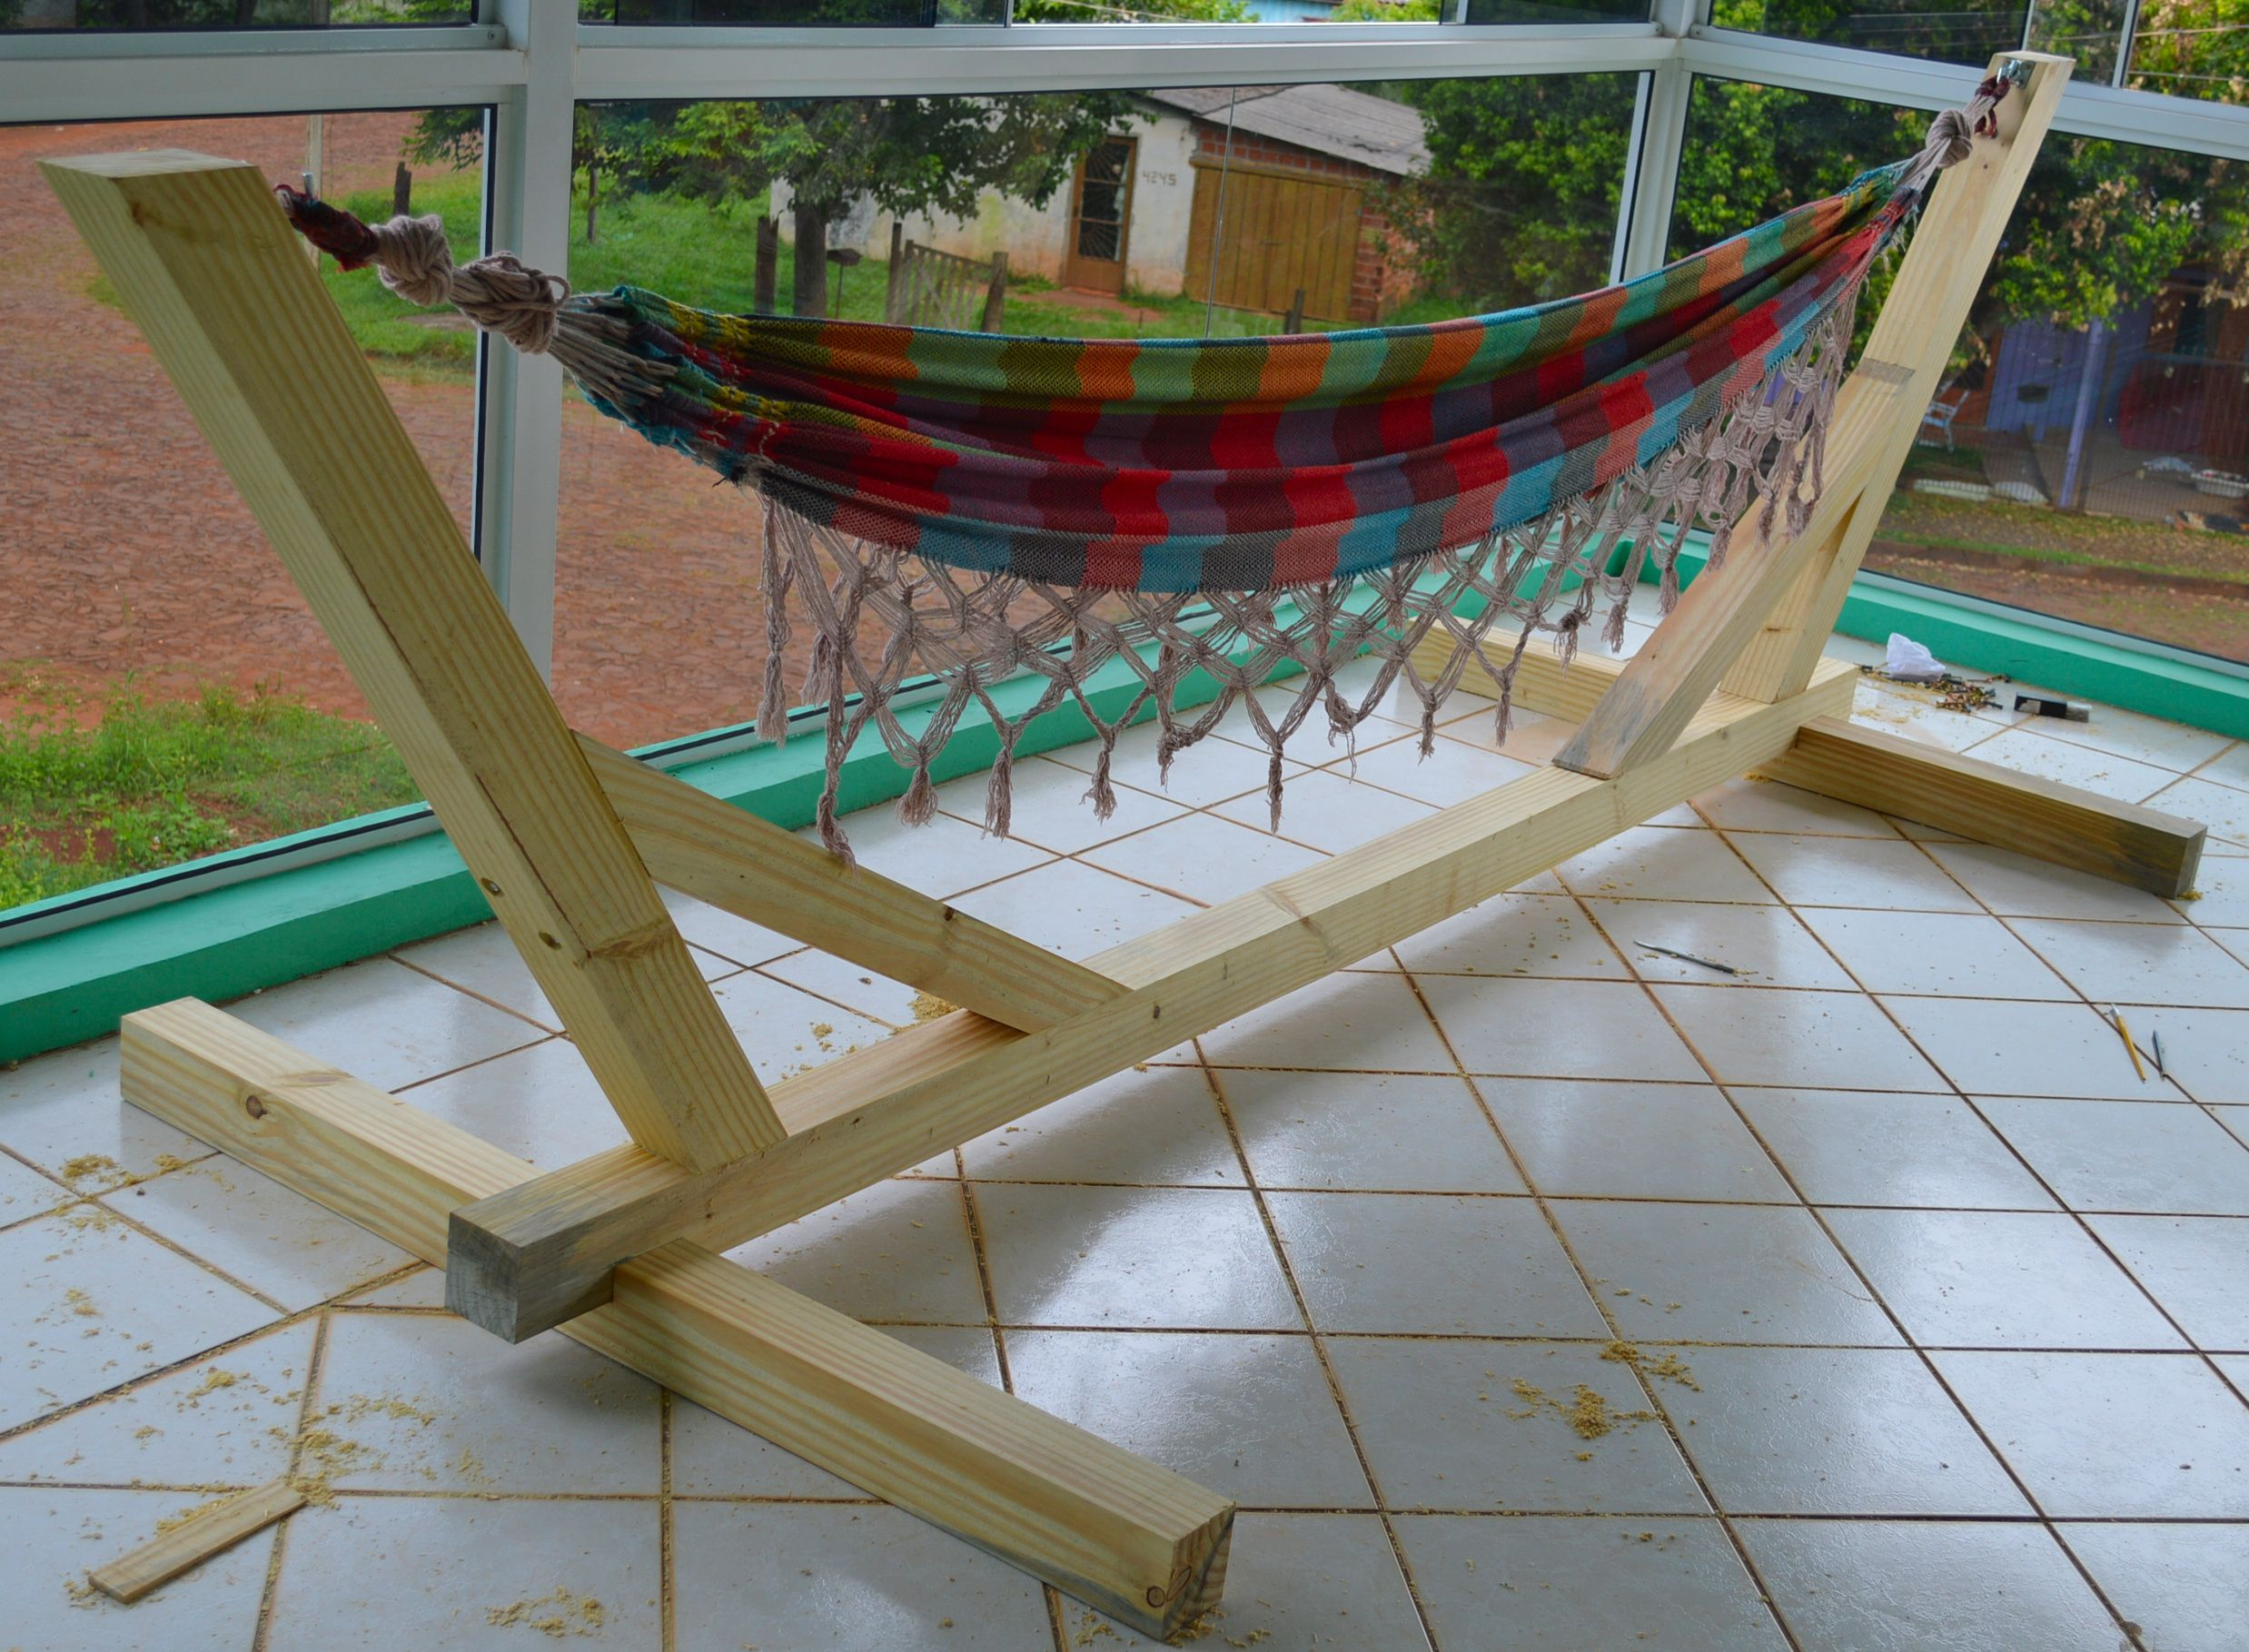 Diy Indoor Hanging Hammock Chair Kids High Booster Seat Stand And Outdoor Woodworking Wood